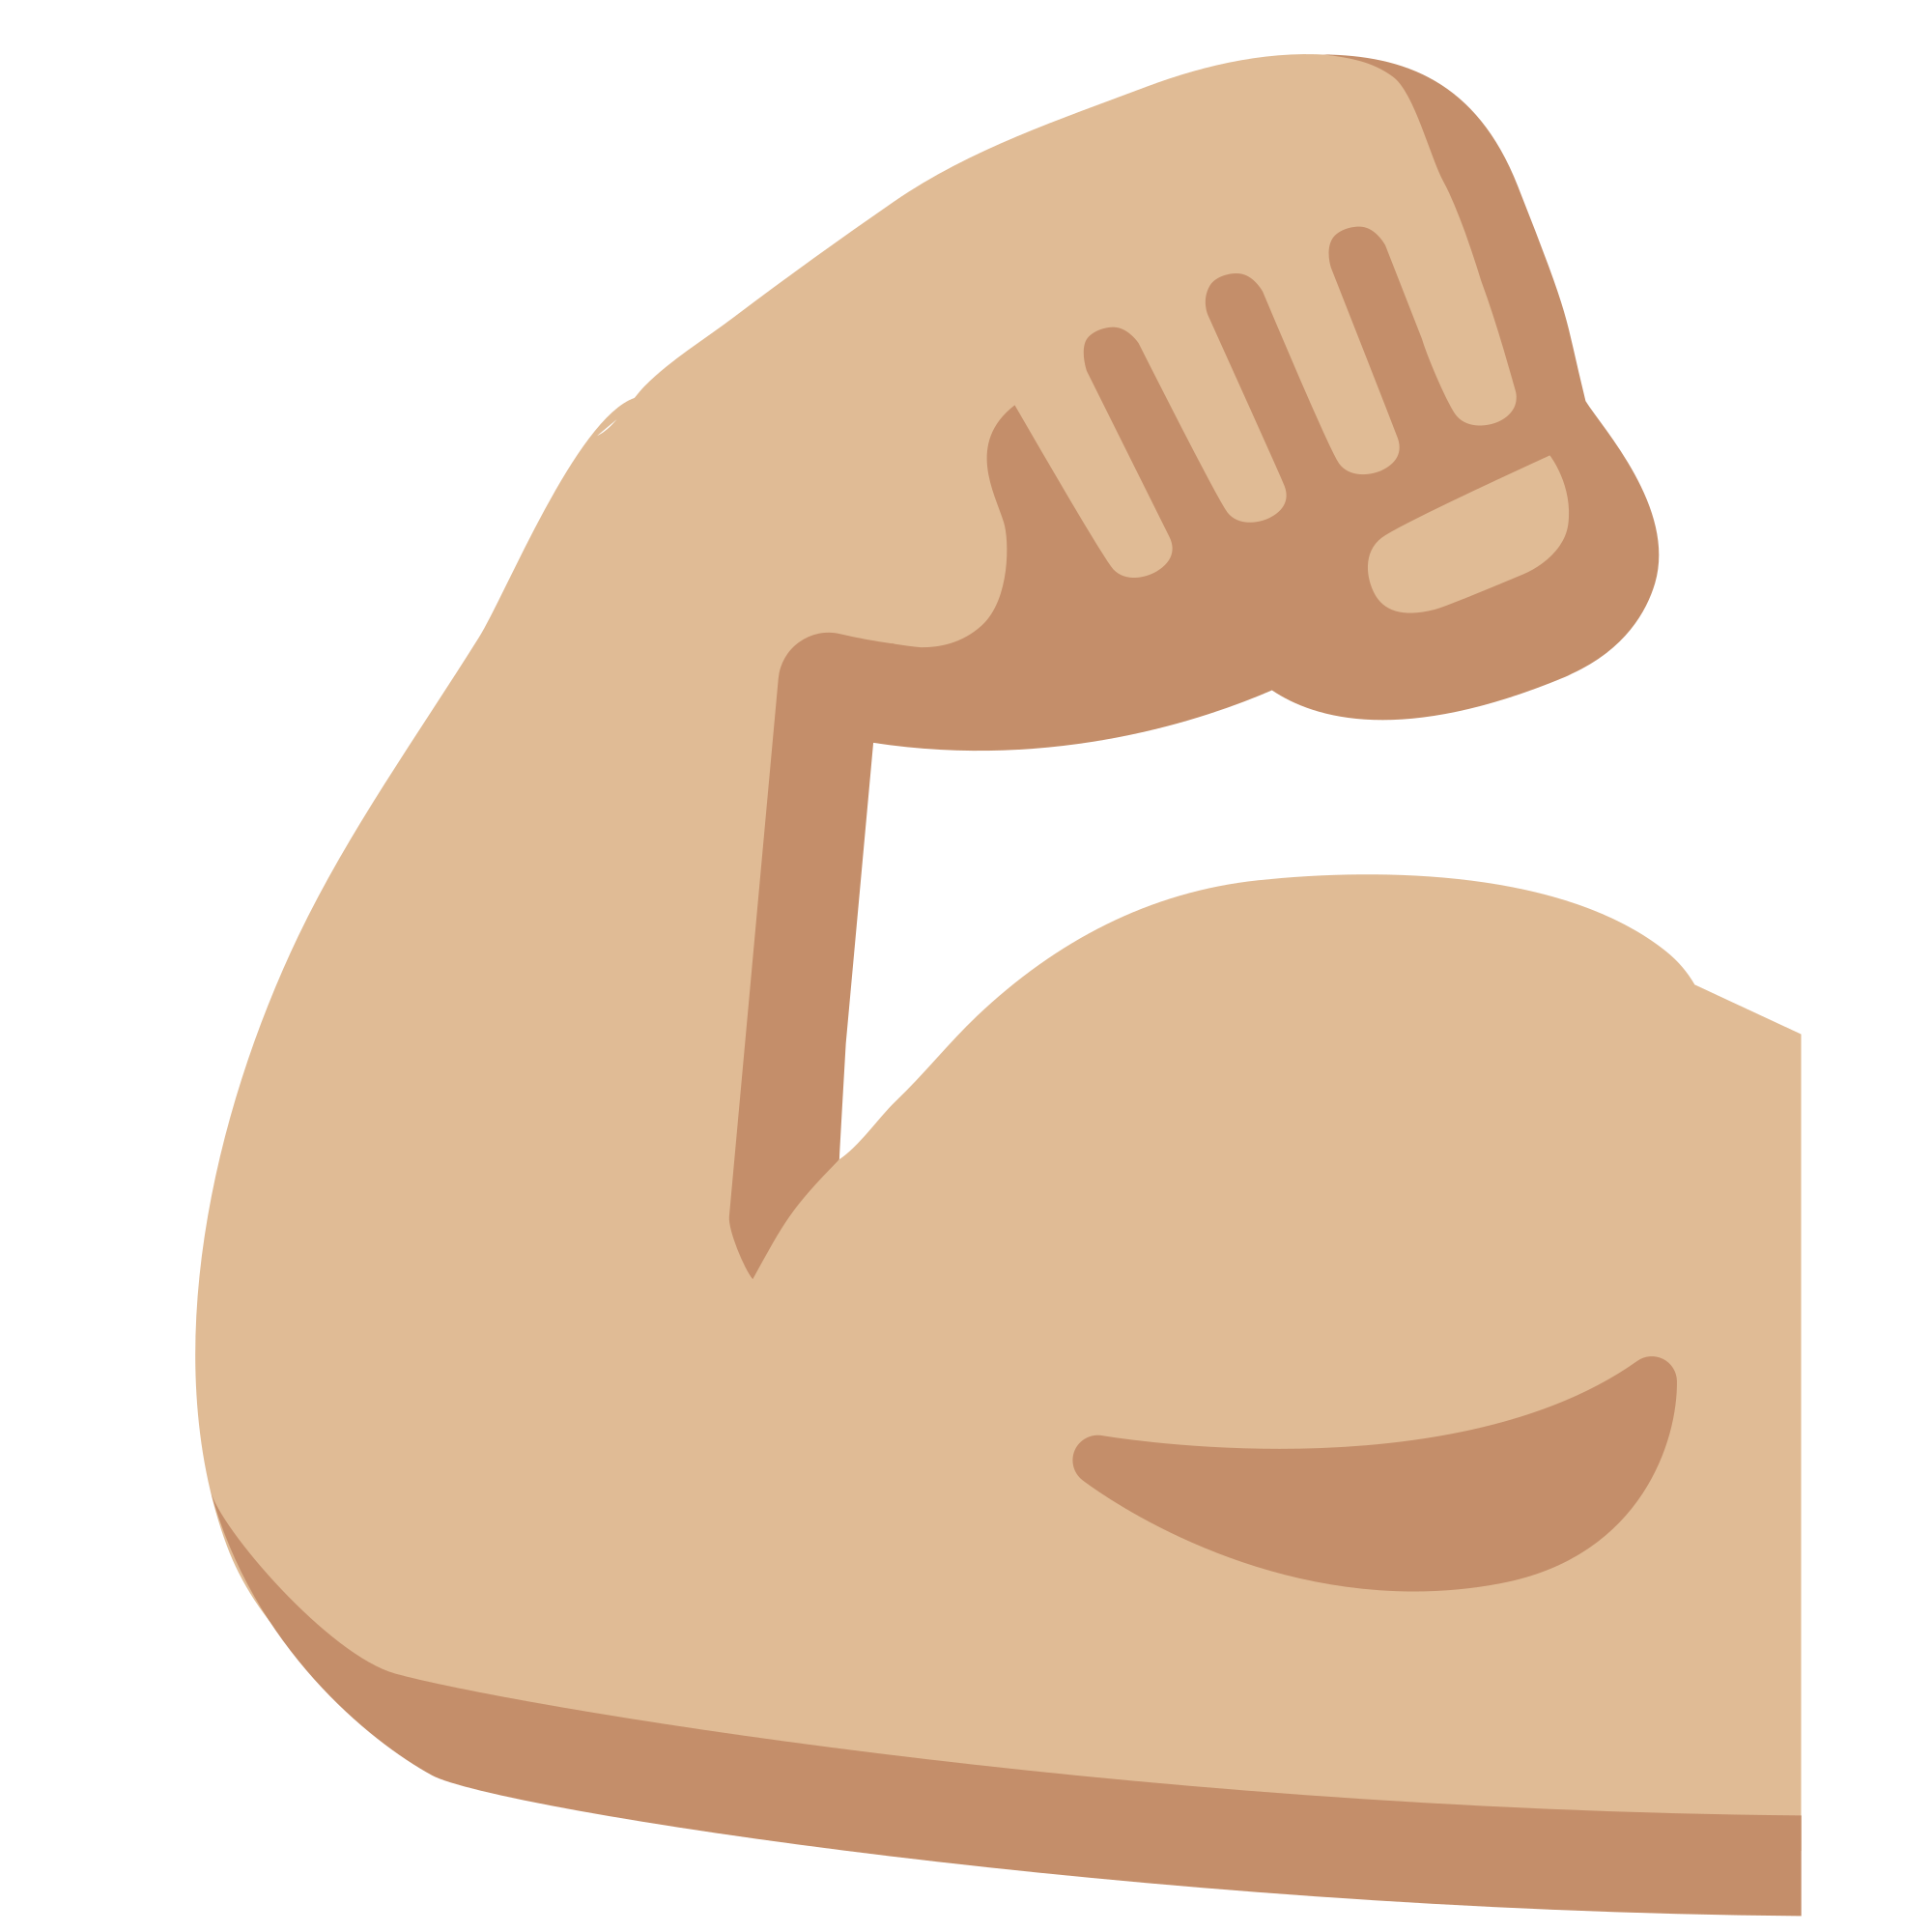 Biceps drawing ripped arm. Muscle png image purepng